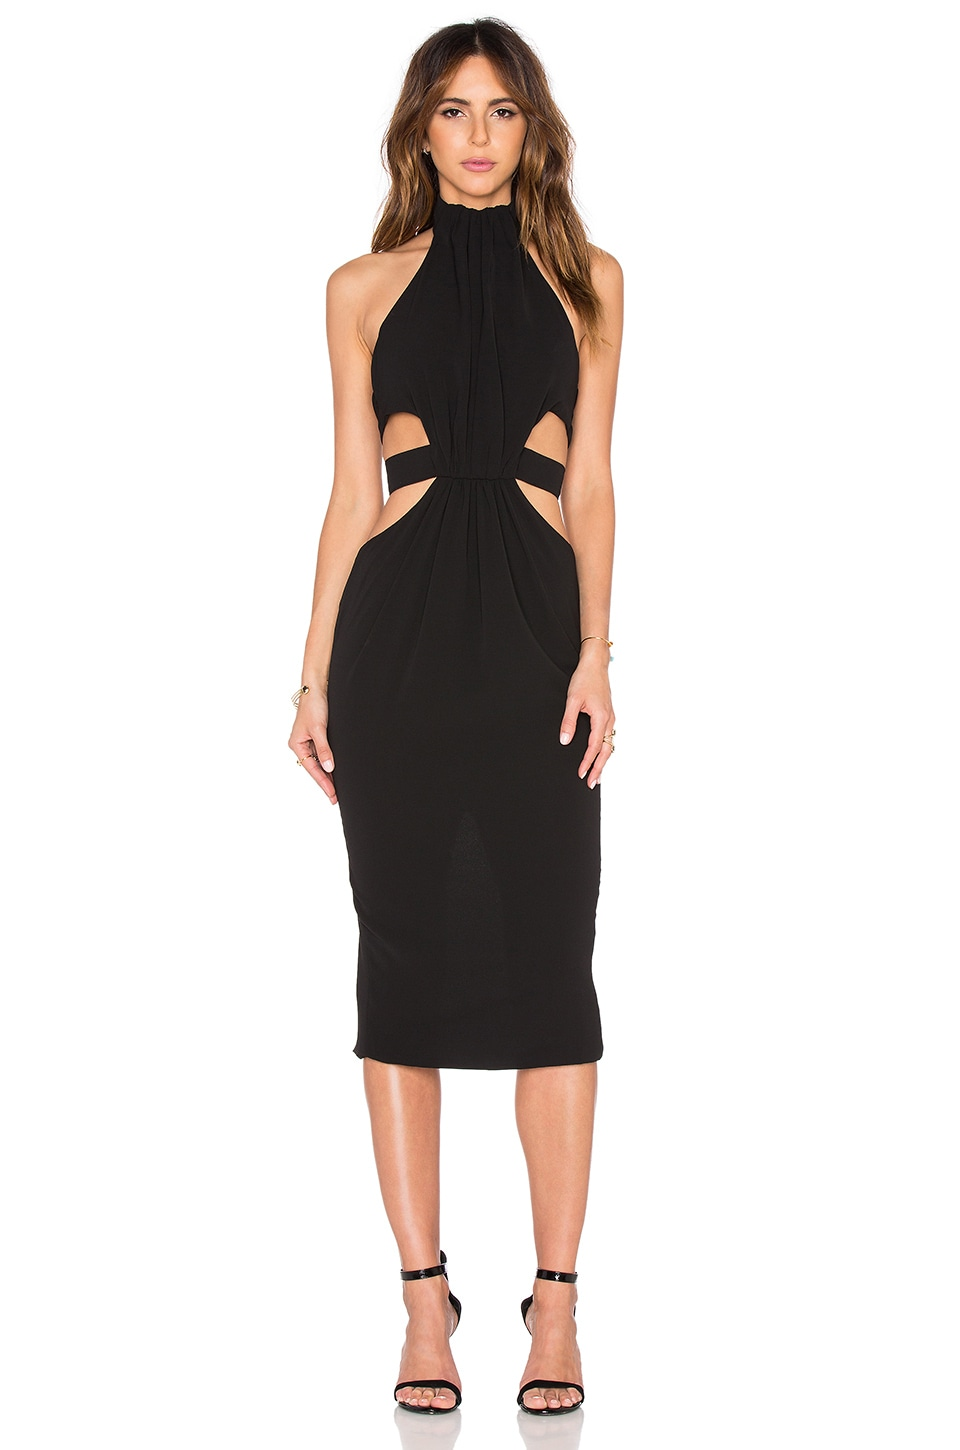 Cici Dress by Misha Collection